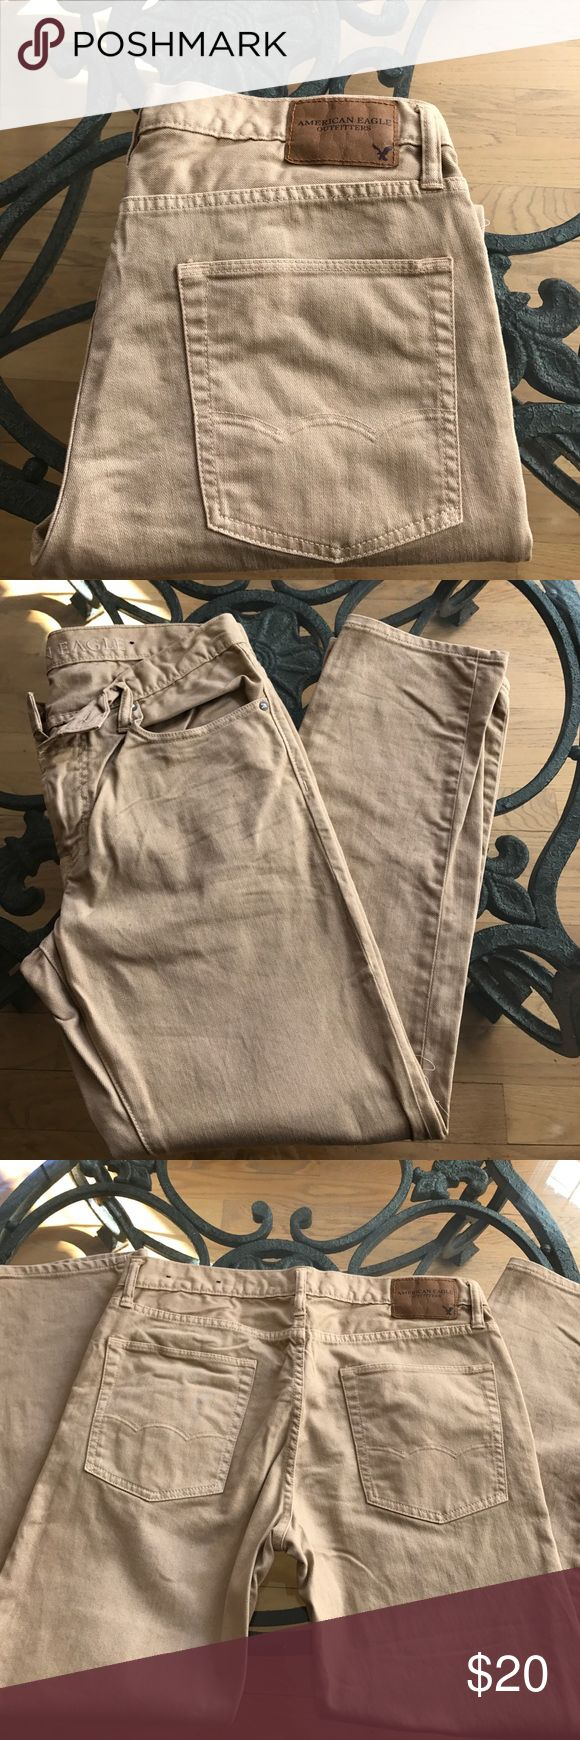 American Eagle Outfitters Men's Jeans  Excellent condition. American Eagle Outfitters Jeans